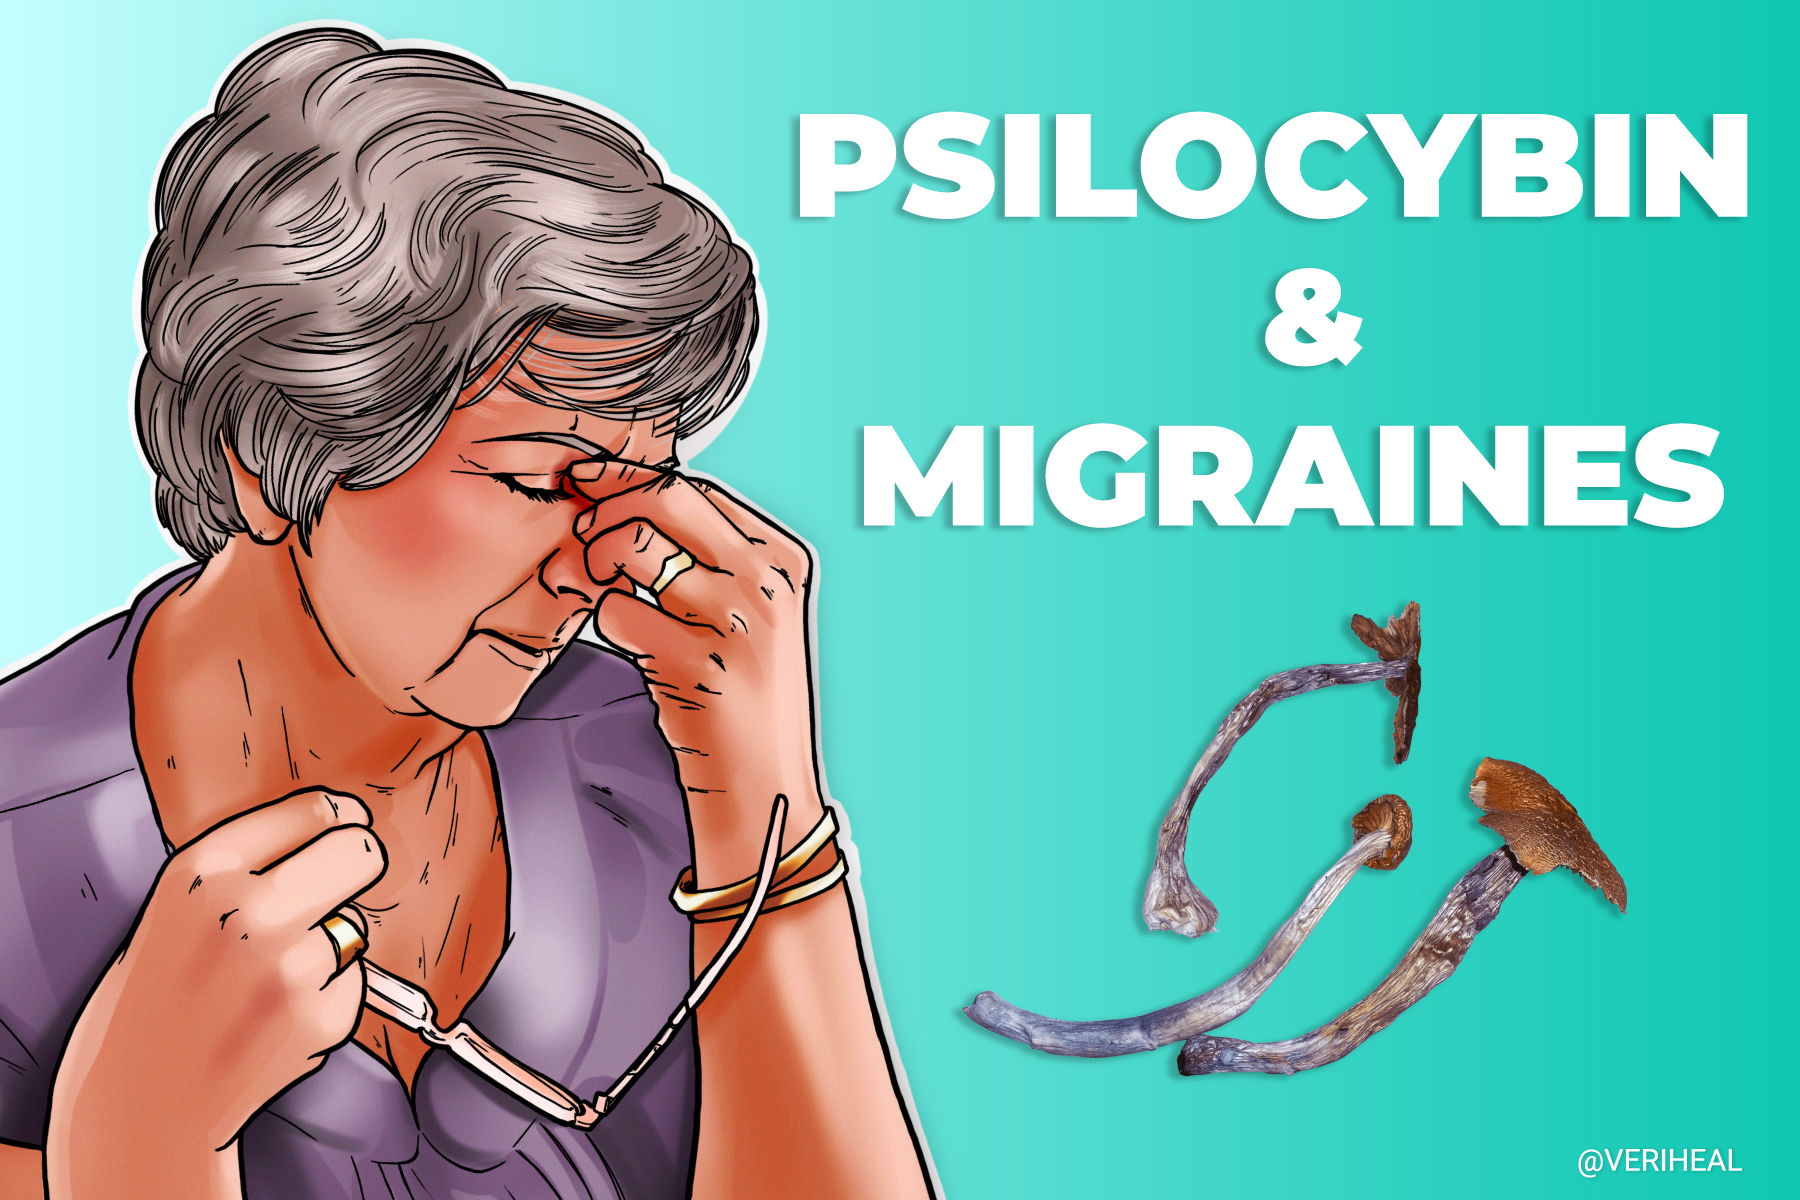 A Single Dose of Psilocybin May Provide Lasting Effects for Migraines